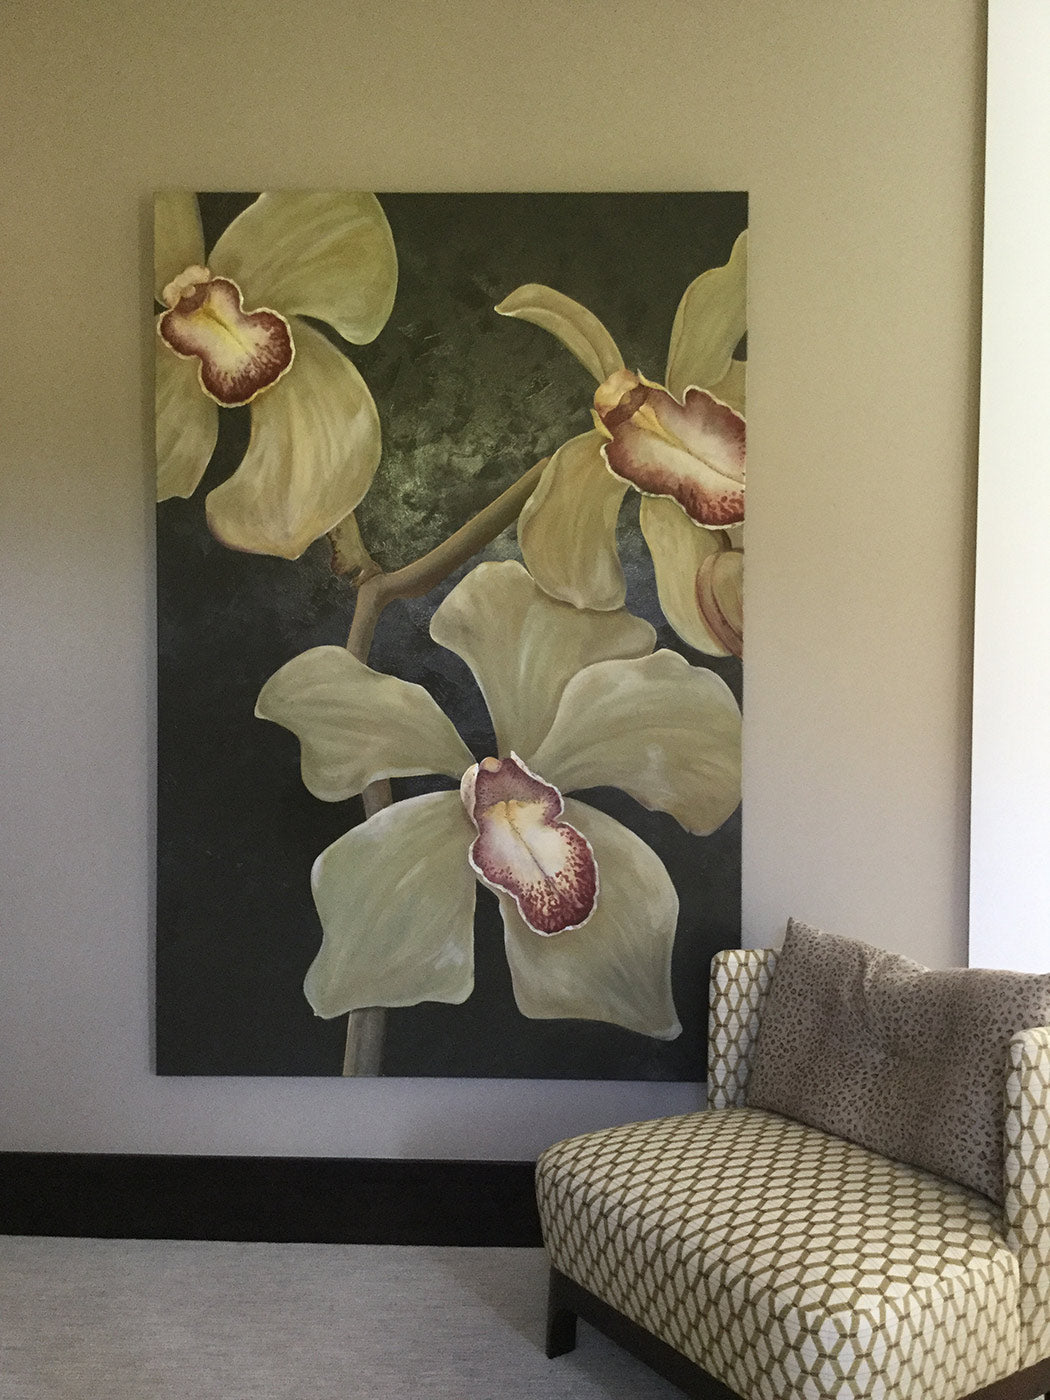 Custom Acrylic Painting to Suit Your Decor - Any Size or Color